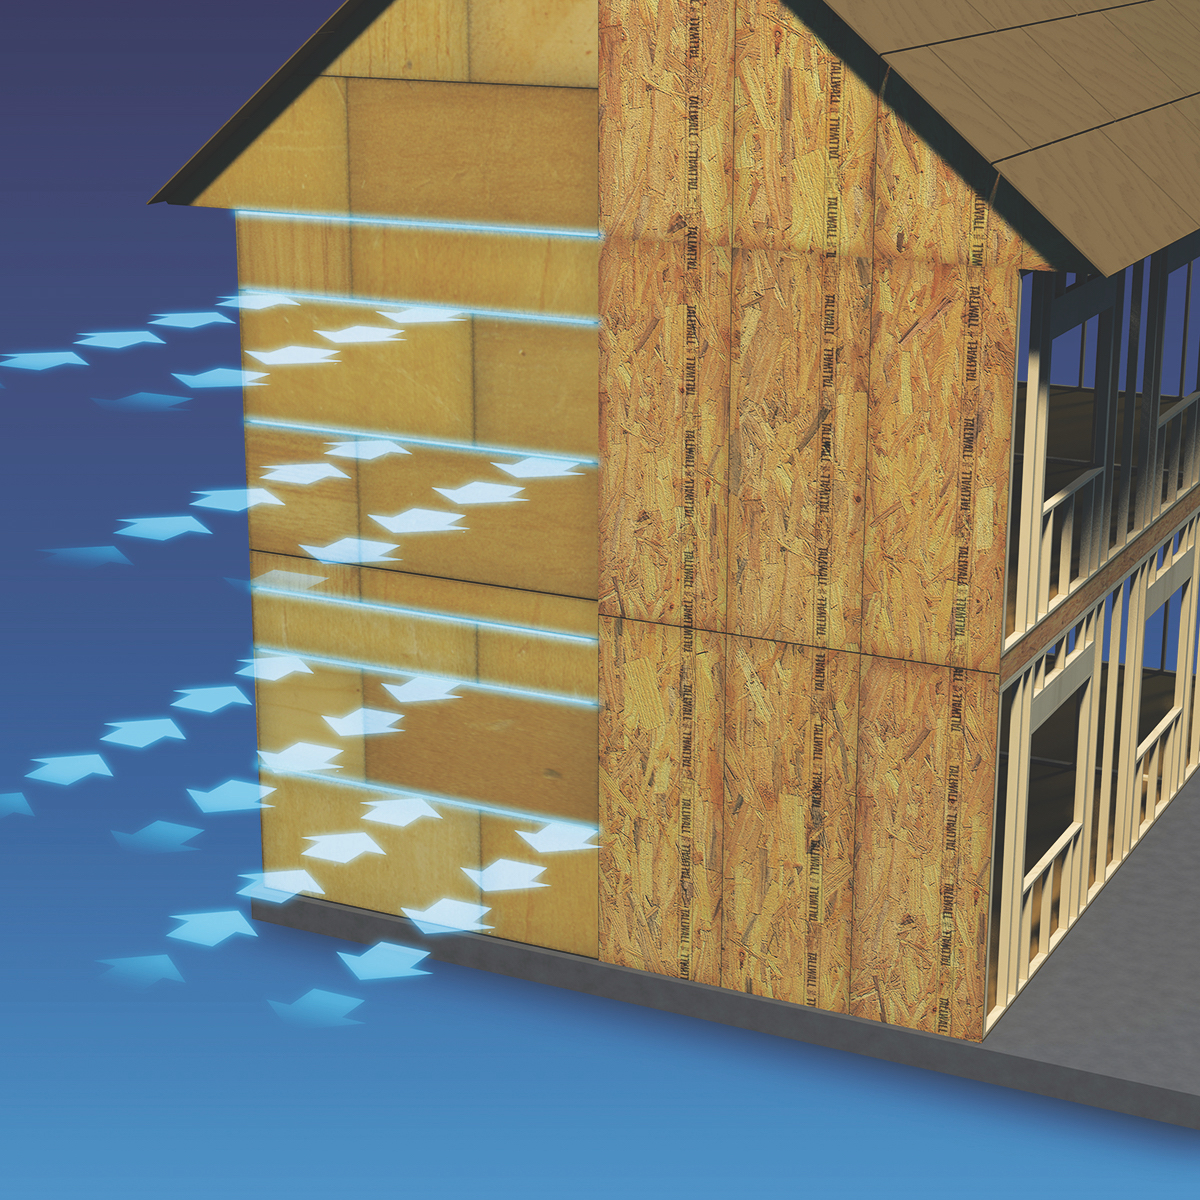 MC Norbord is a manufacturer of wood-based panels used for roof and wall sheathing, subfloors, and stairs